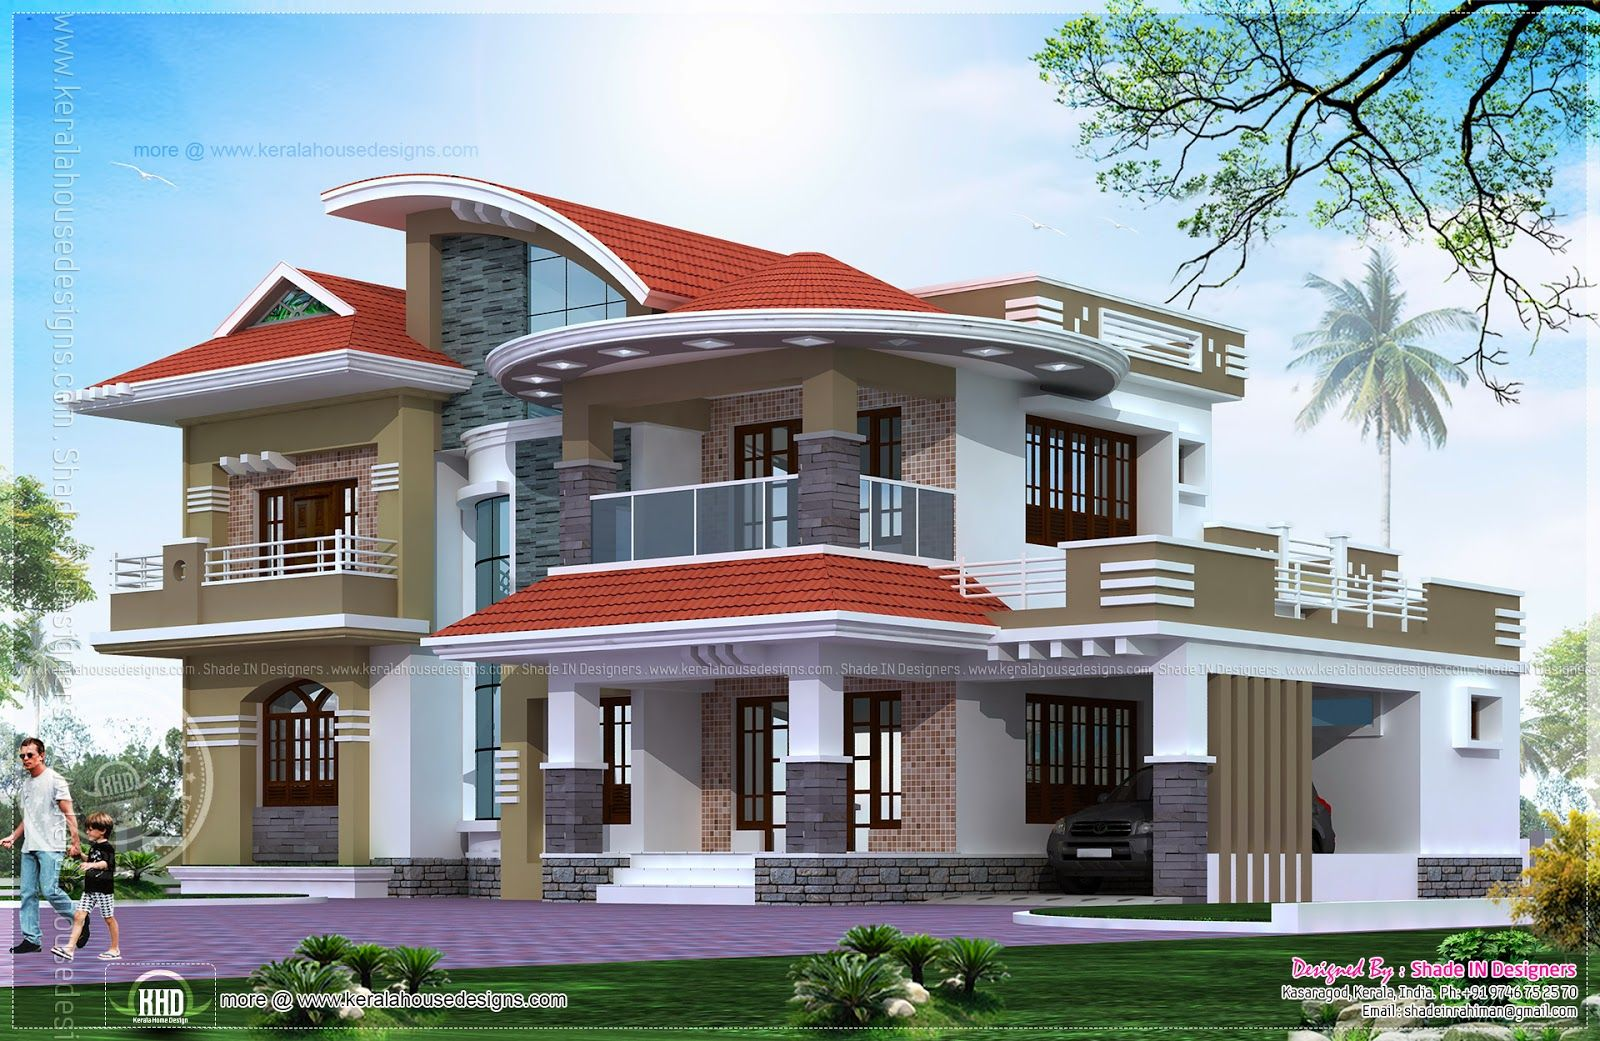 5 Bedroom Luxury House In Kasaragod Beautiful House Plans Luxury House Plans Kerala House Design